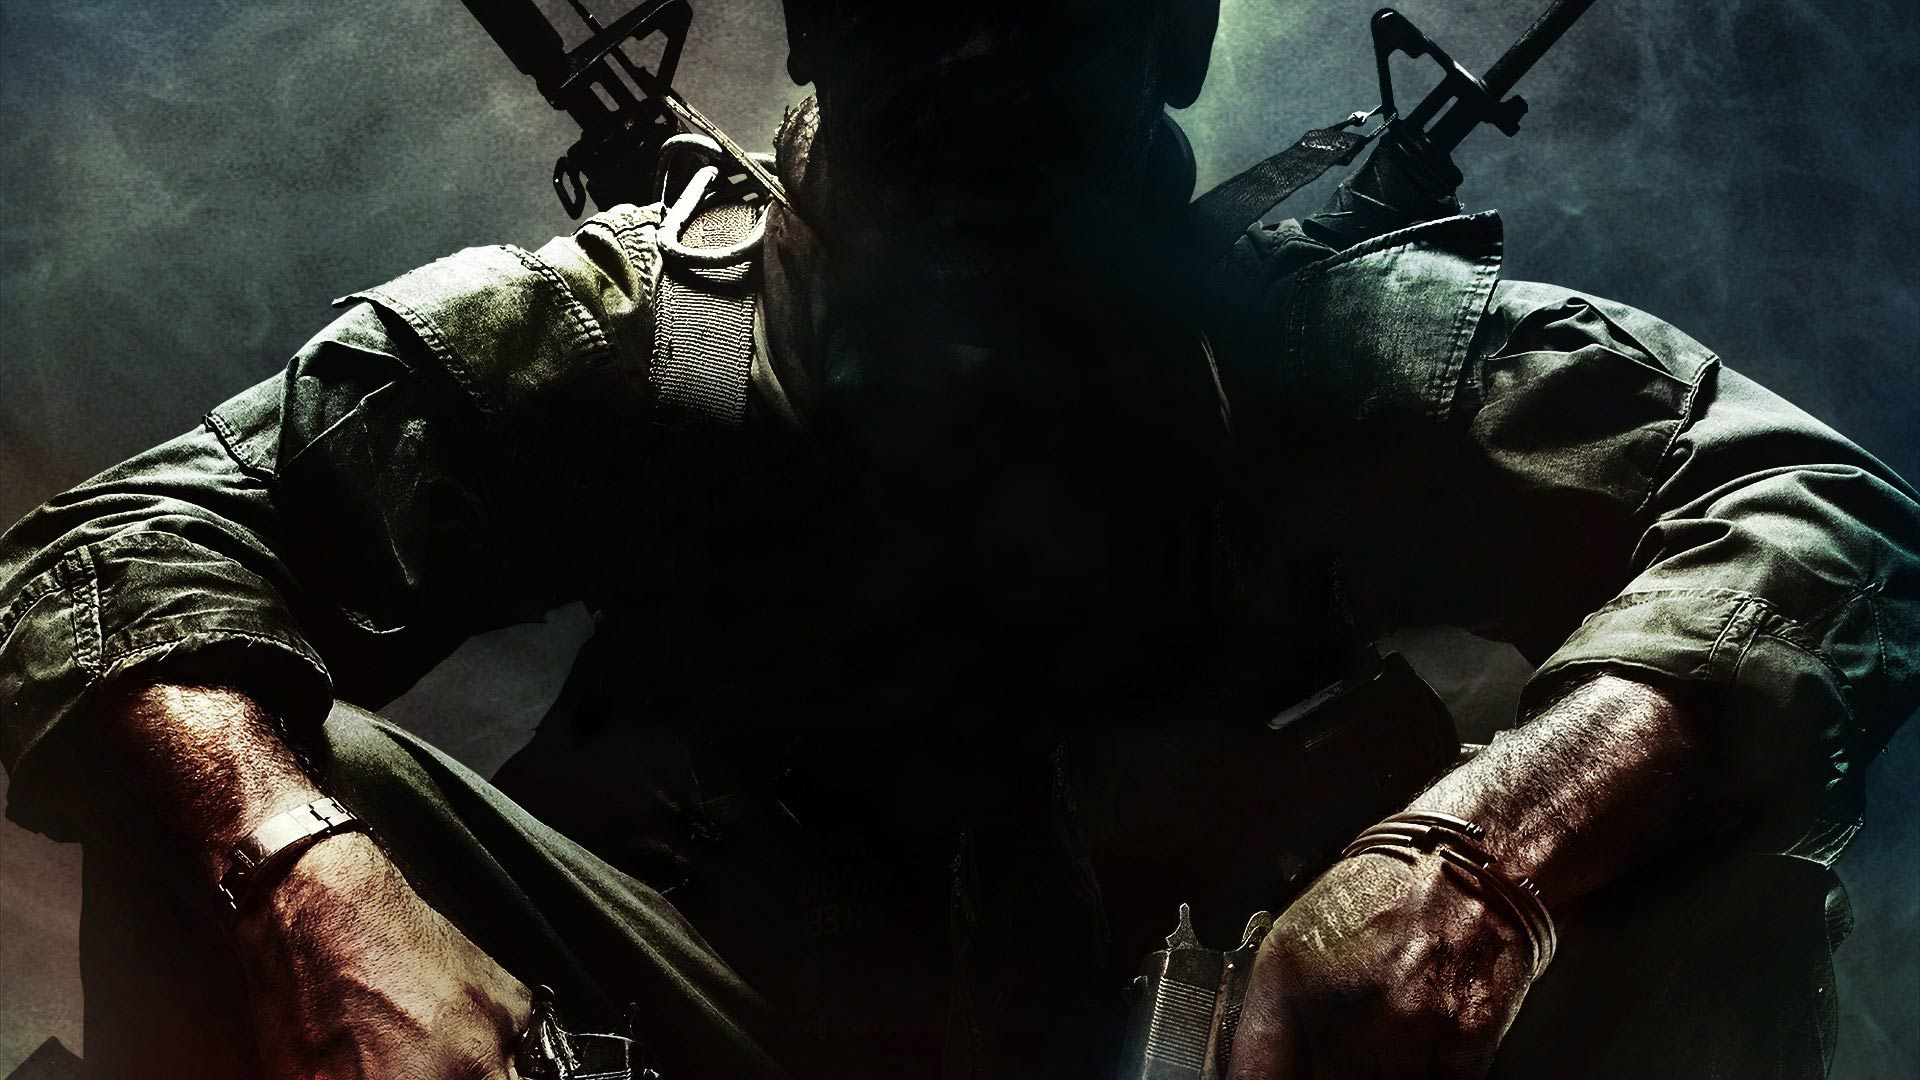 Call of duty Black Ops multiplayer(zombies) with (NemexisOps)